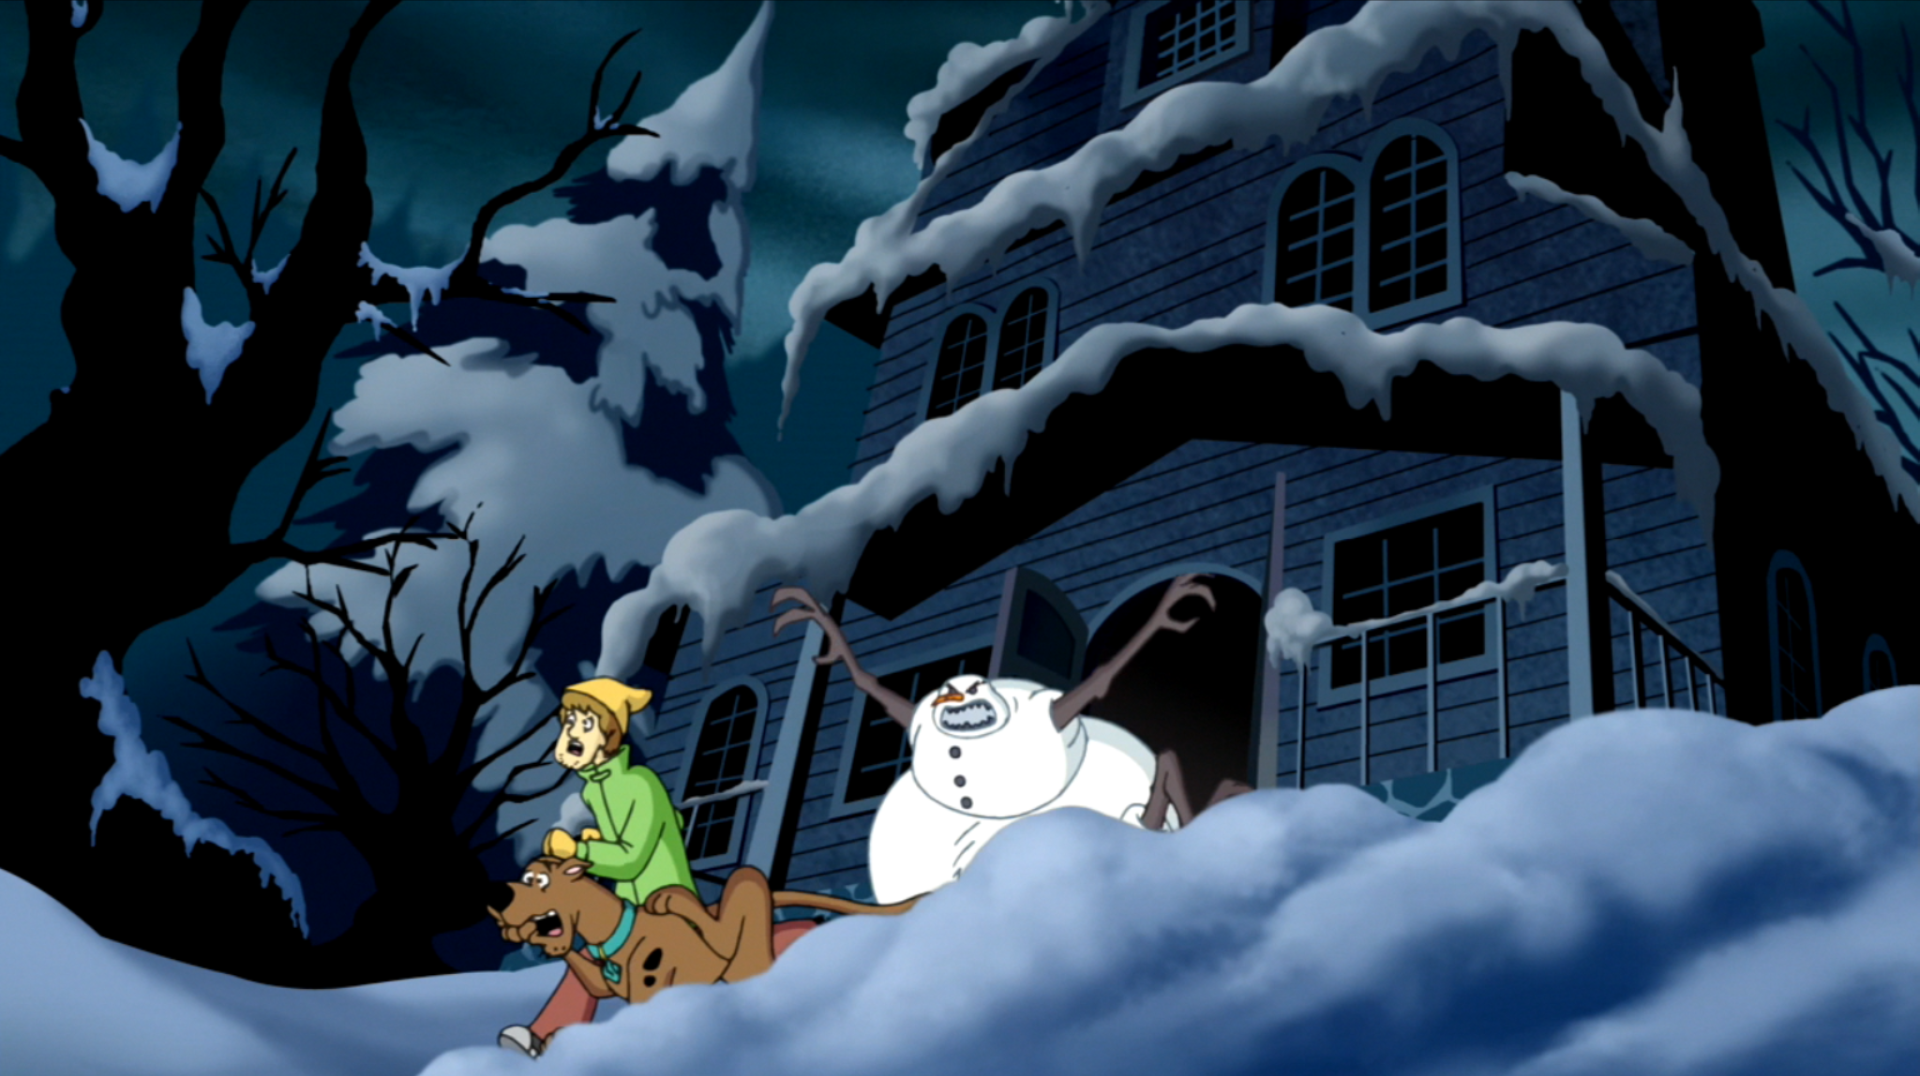 Headless Snowman Chases Shag And Scoob Out Of Jebu0026#039;s Home. Headless  Snowman Chases Shag And Scoob Out Of Jebu0026#039;s Home